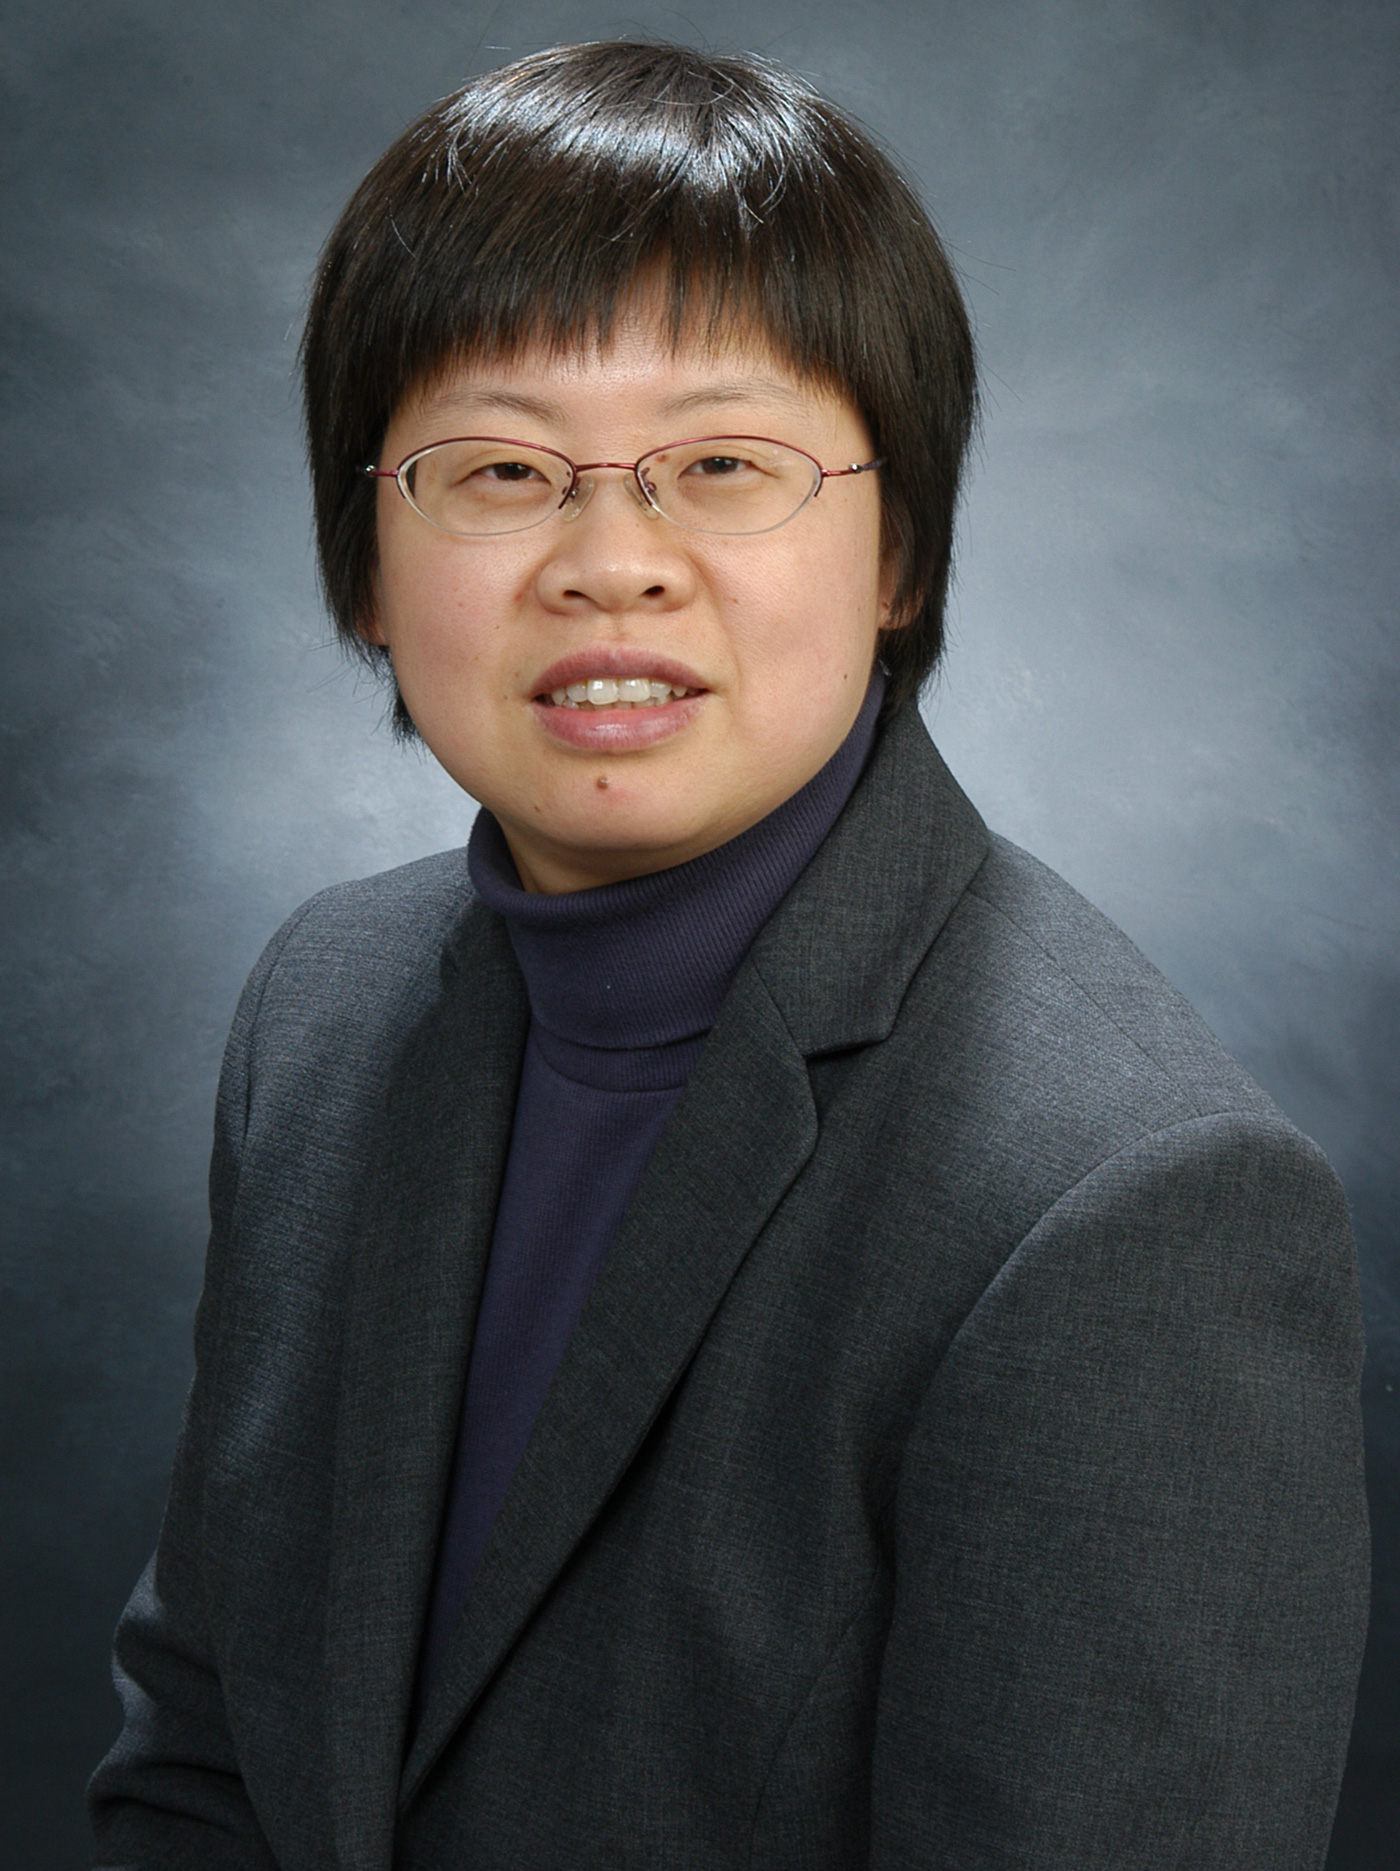 Yao Chen is a Professor  in the Manning School of Business'  Operations and Information Systems Department at UMass Lowell.